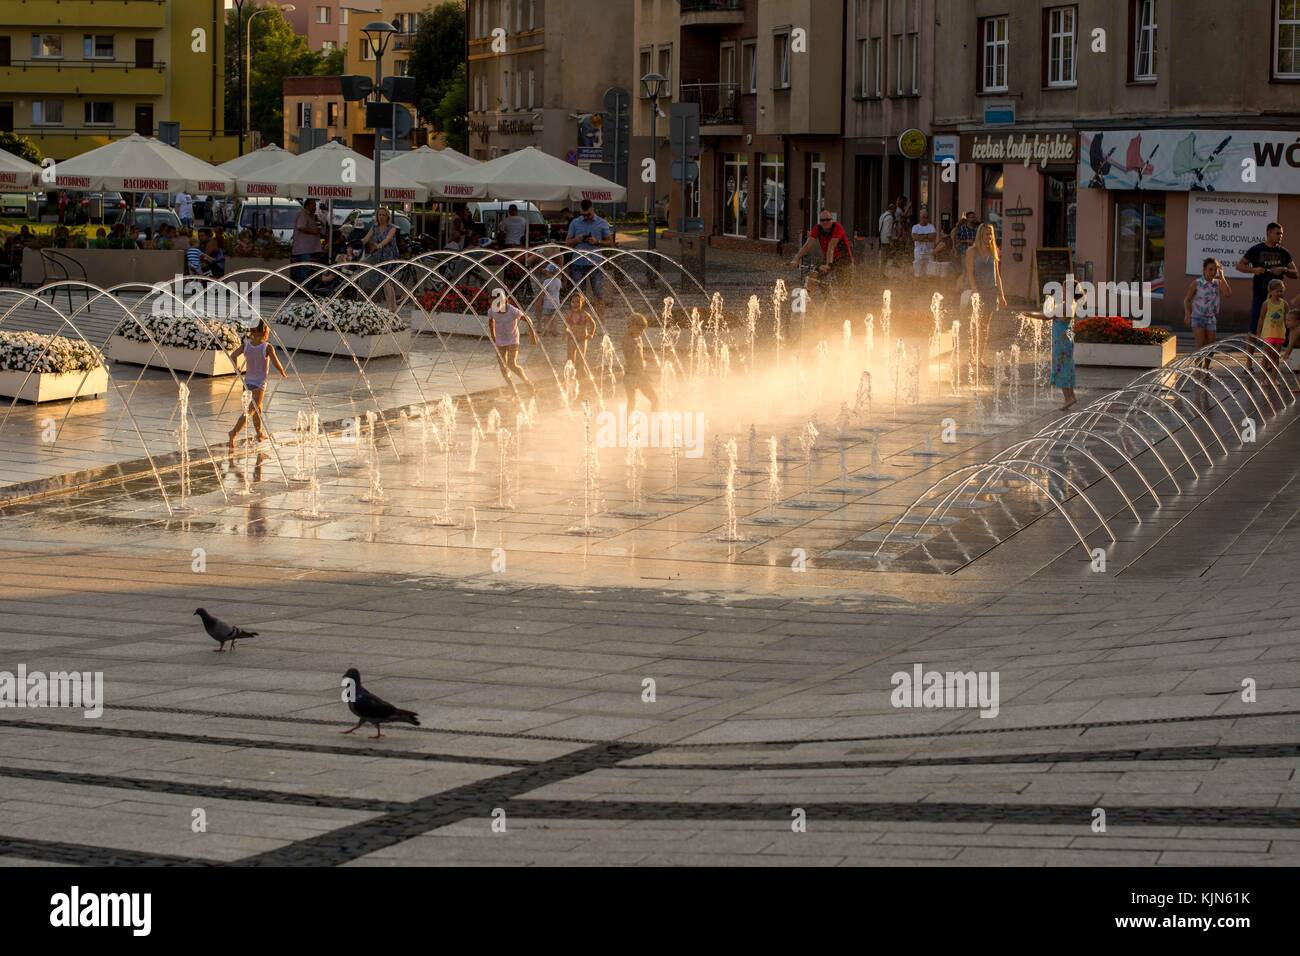 Fountain in John Paul 2 Square in Rybnik Poland - Stock Image